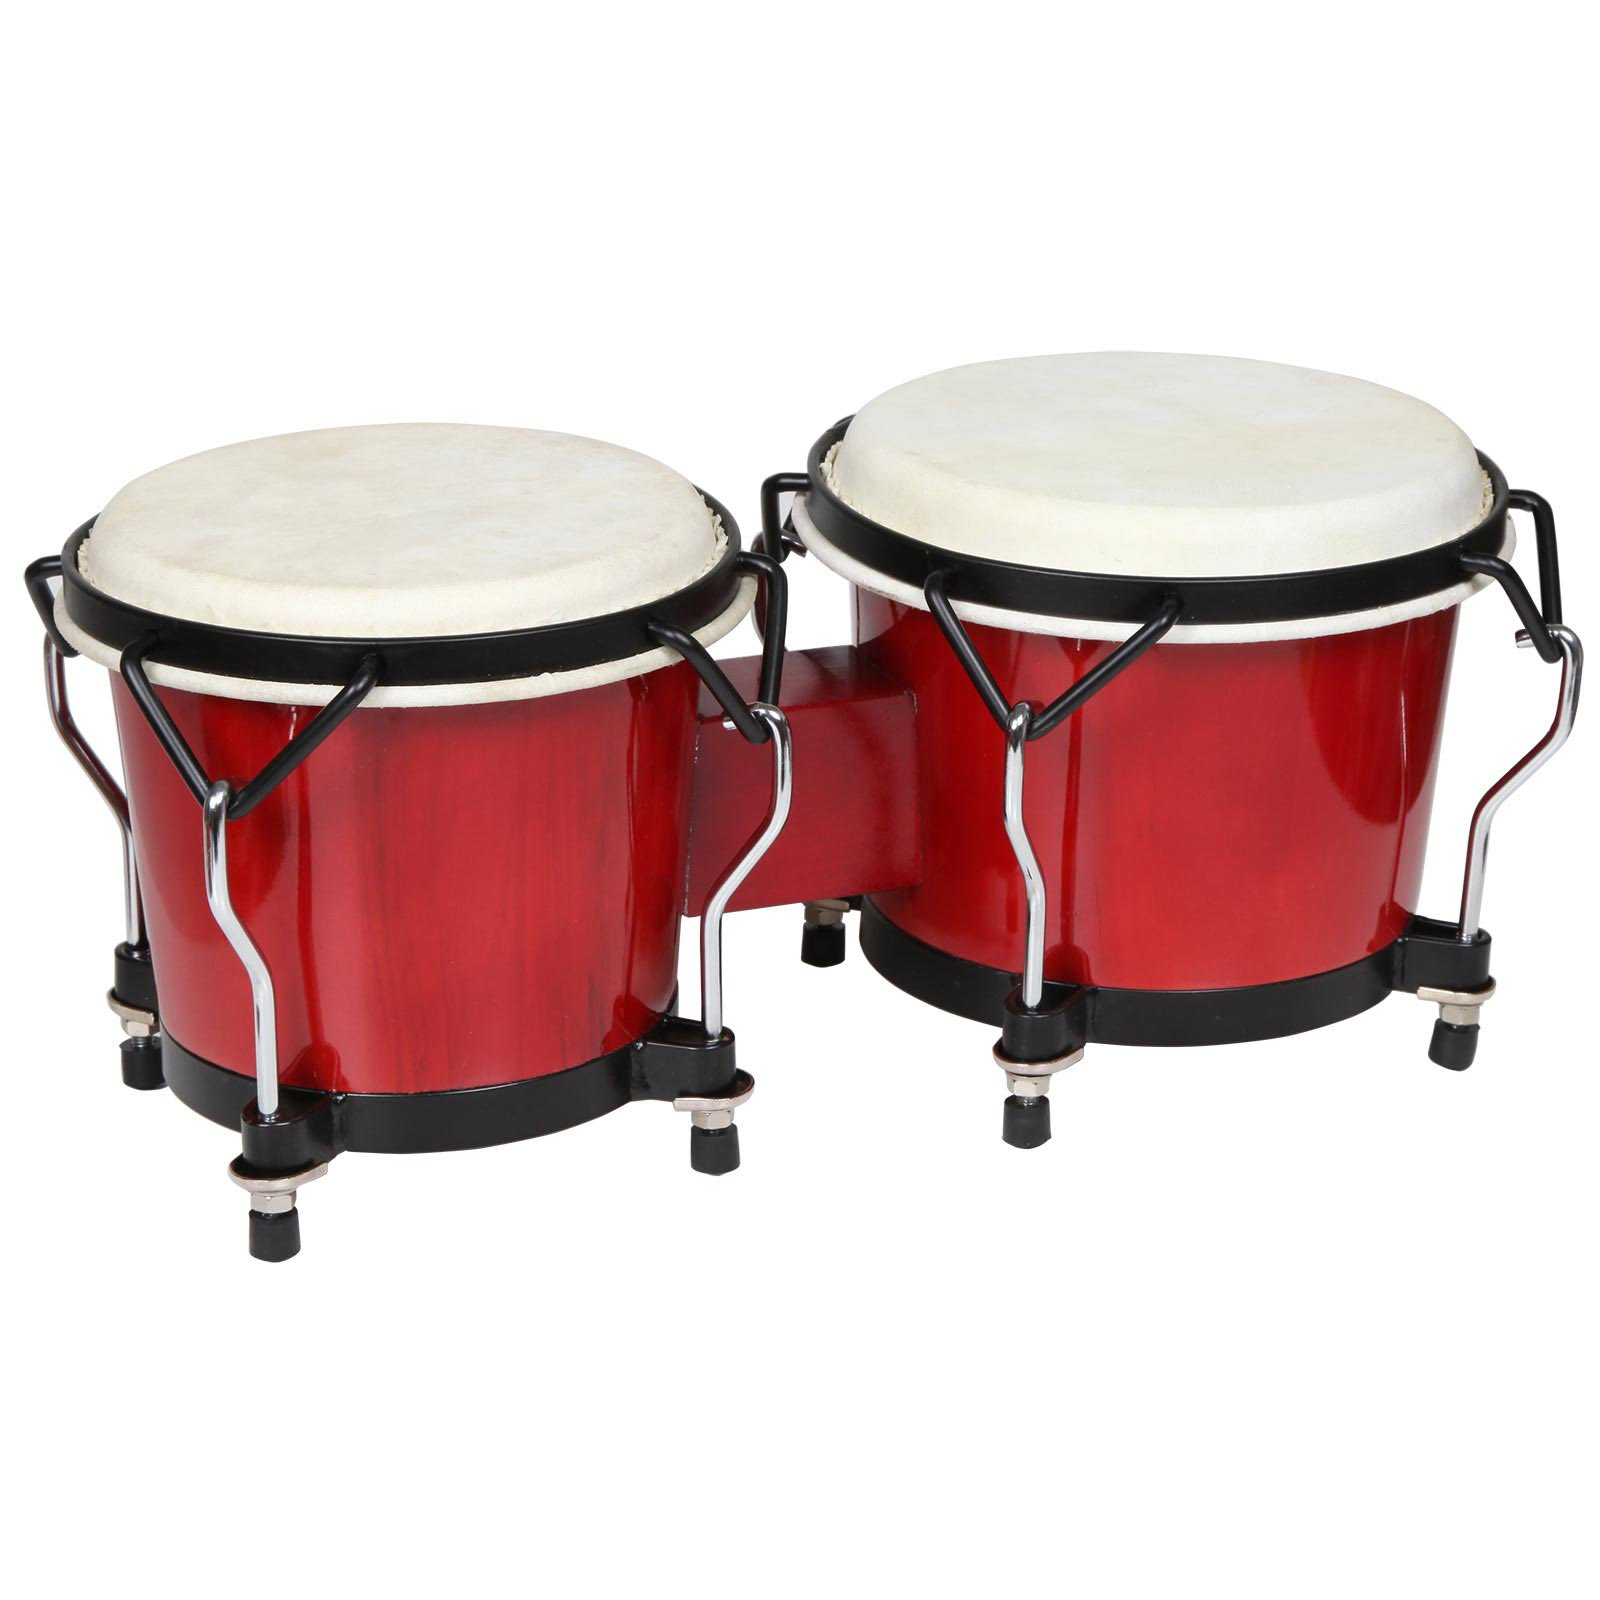 X8 Drums Endeavor Series Wood Bongos by X8 Drums